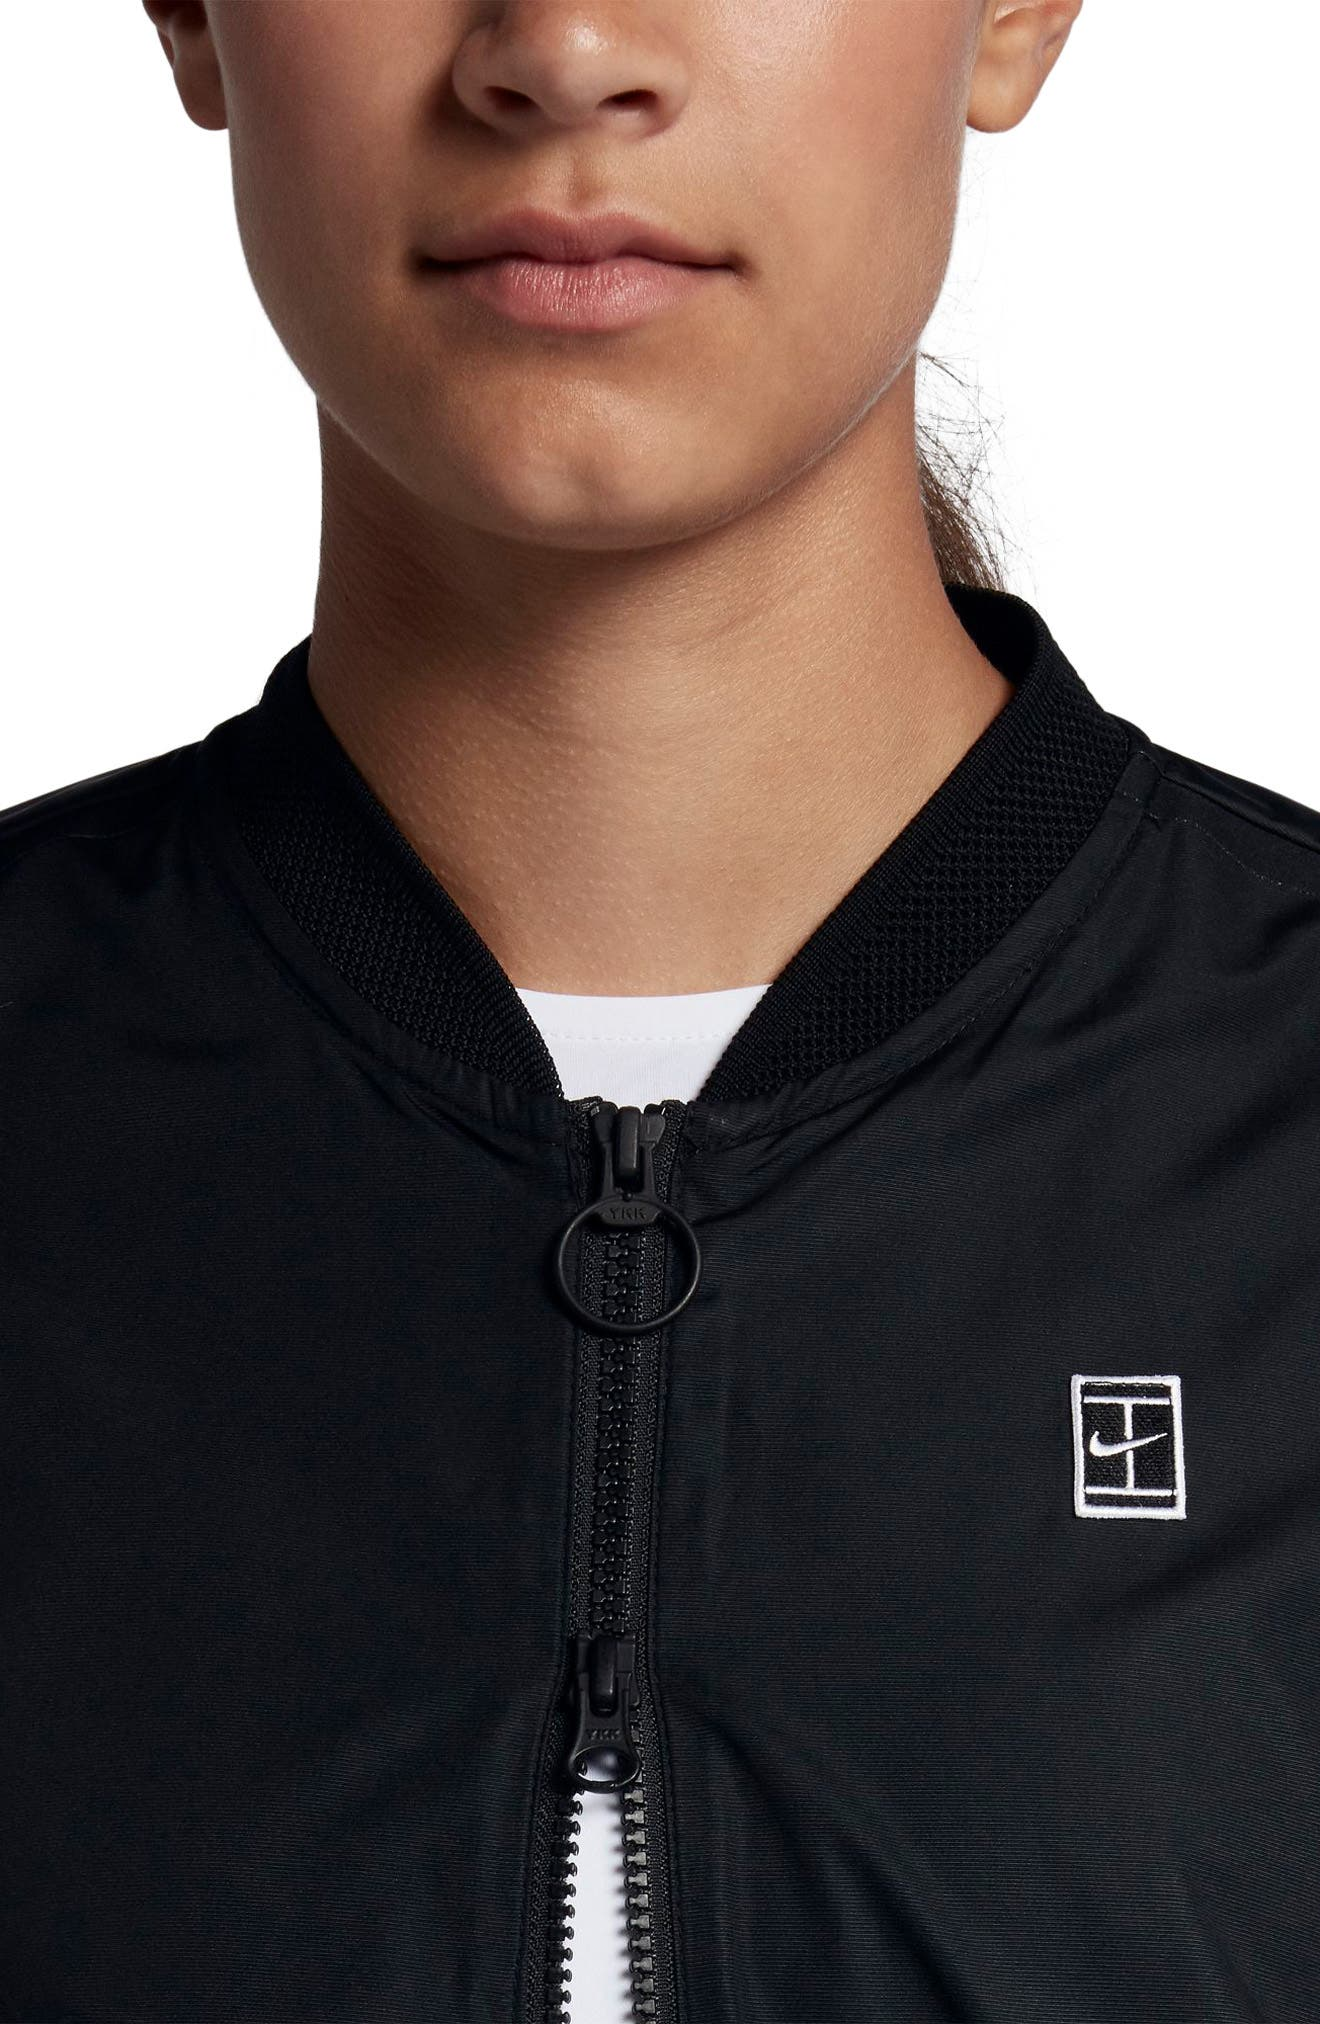 Court Water-Resistant Bomber Jacket,                             Alternate thumbnail 3, color,                             Black/ Summit White/ White